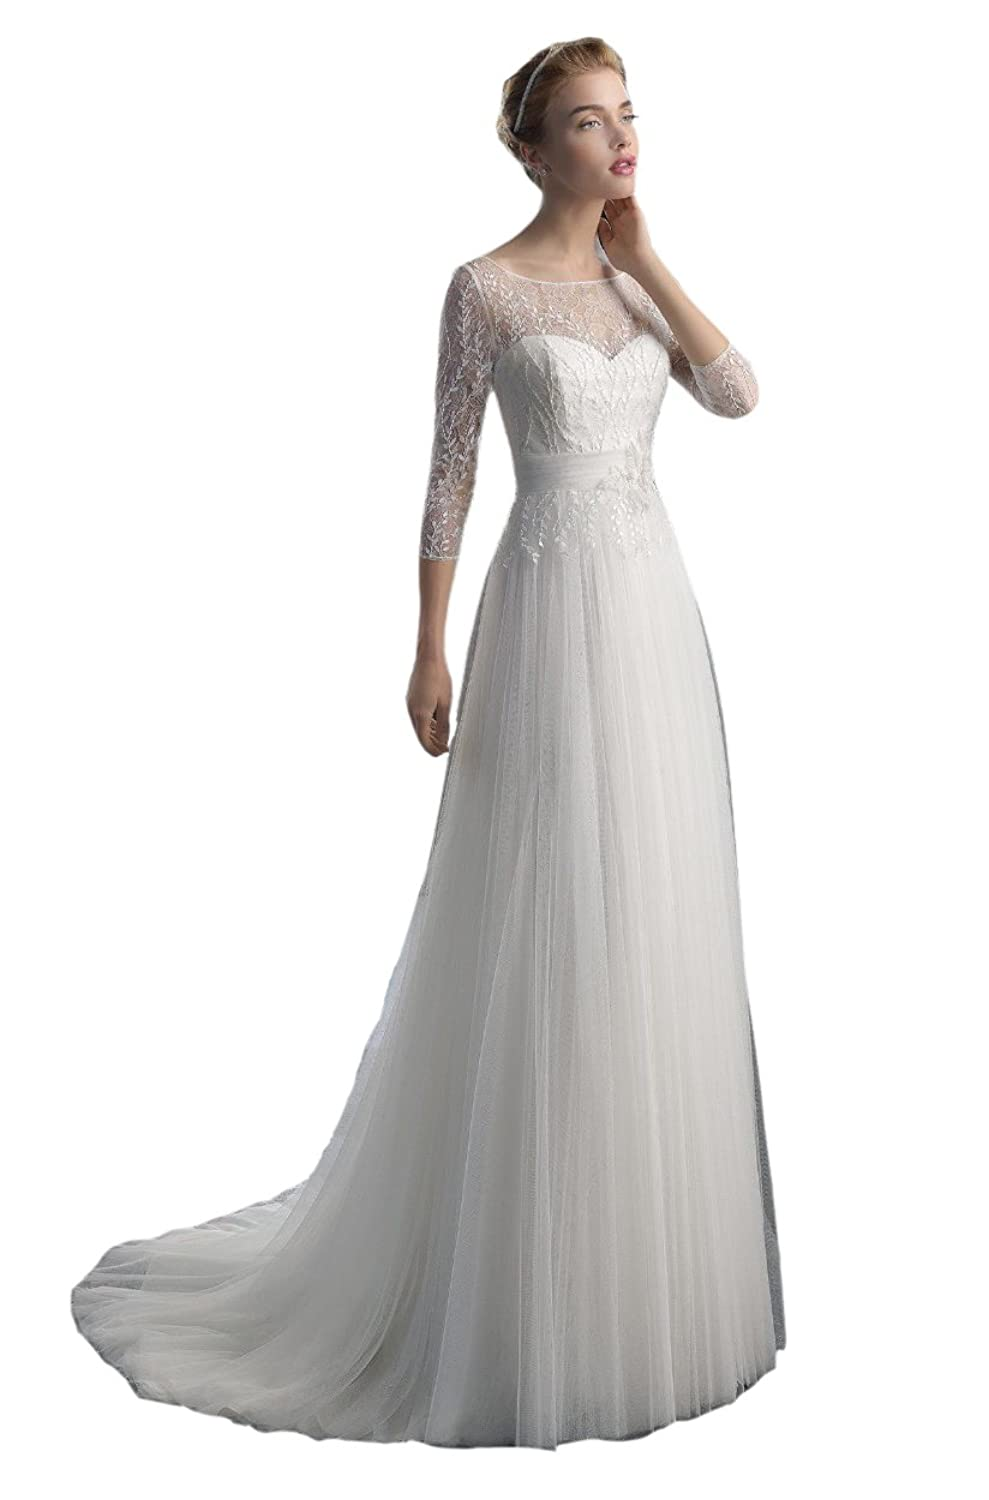 Engerla Women's A Line 3/4 Sleeves Beading Sequin Bodice Keyhole Back Tulle Long Wedding Dress